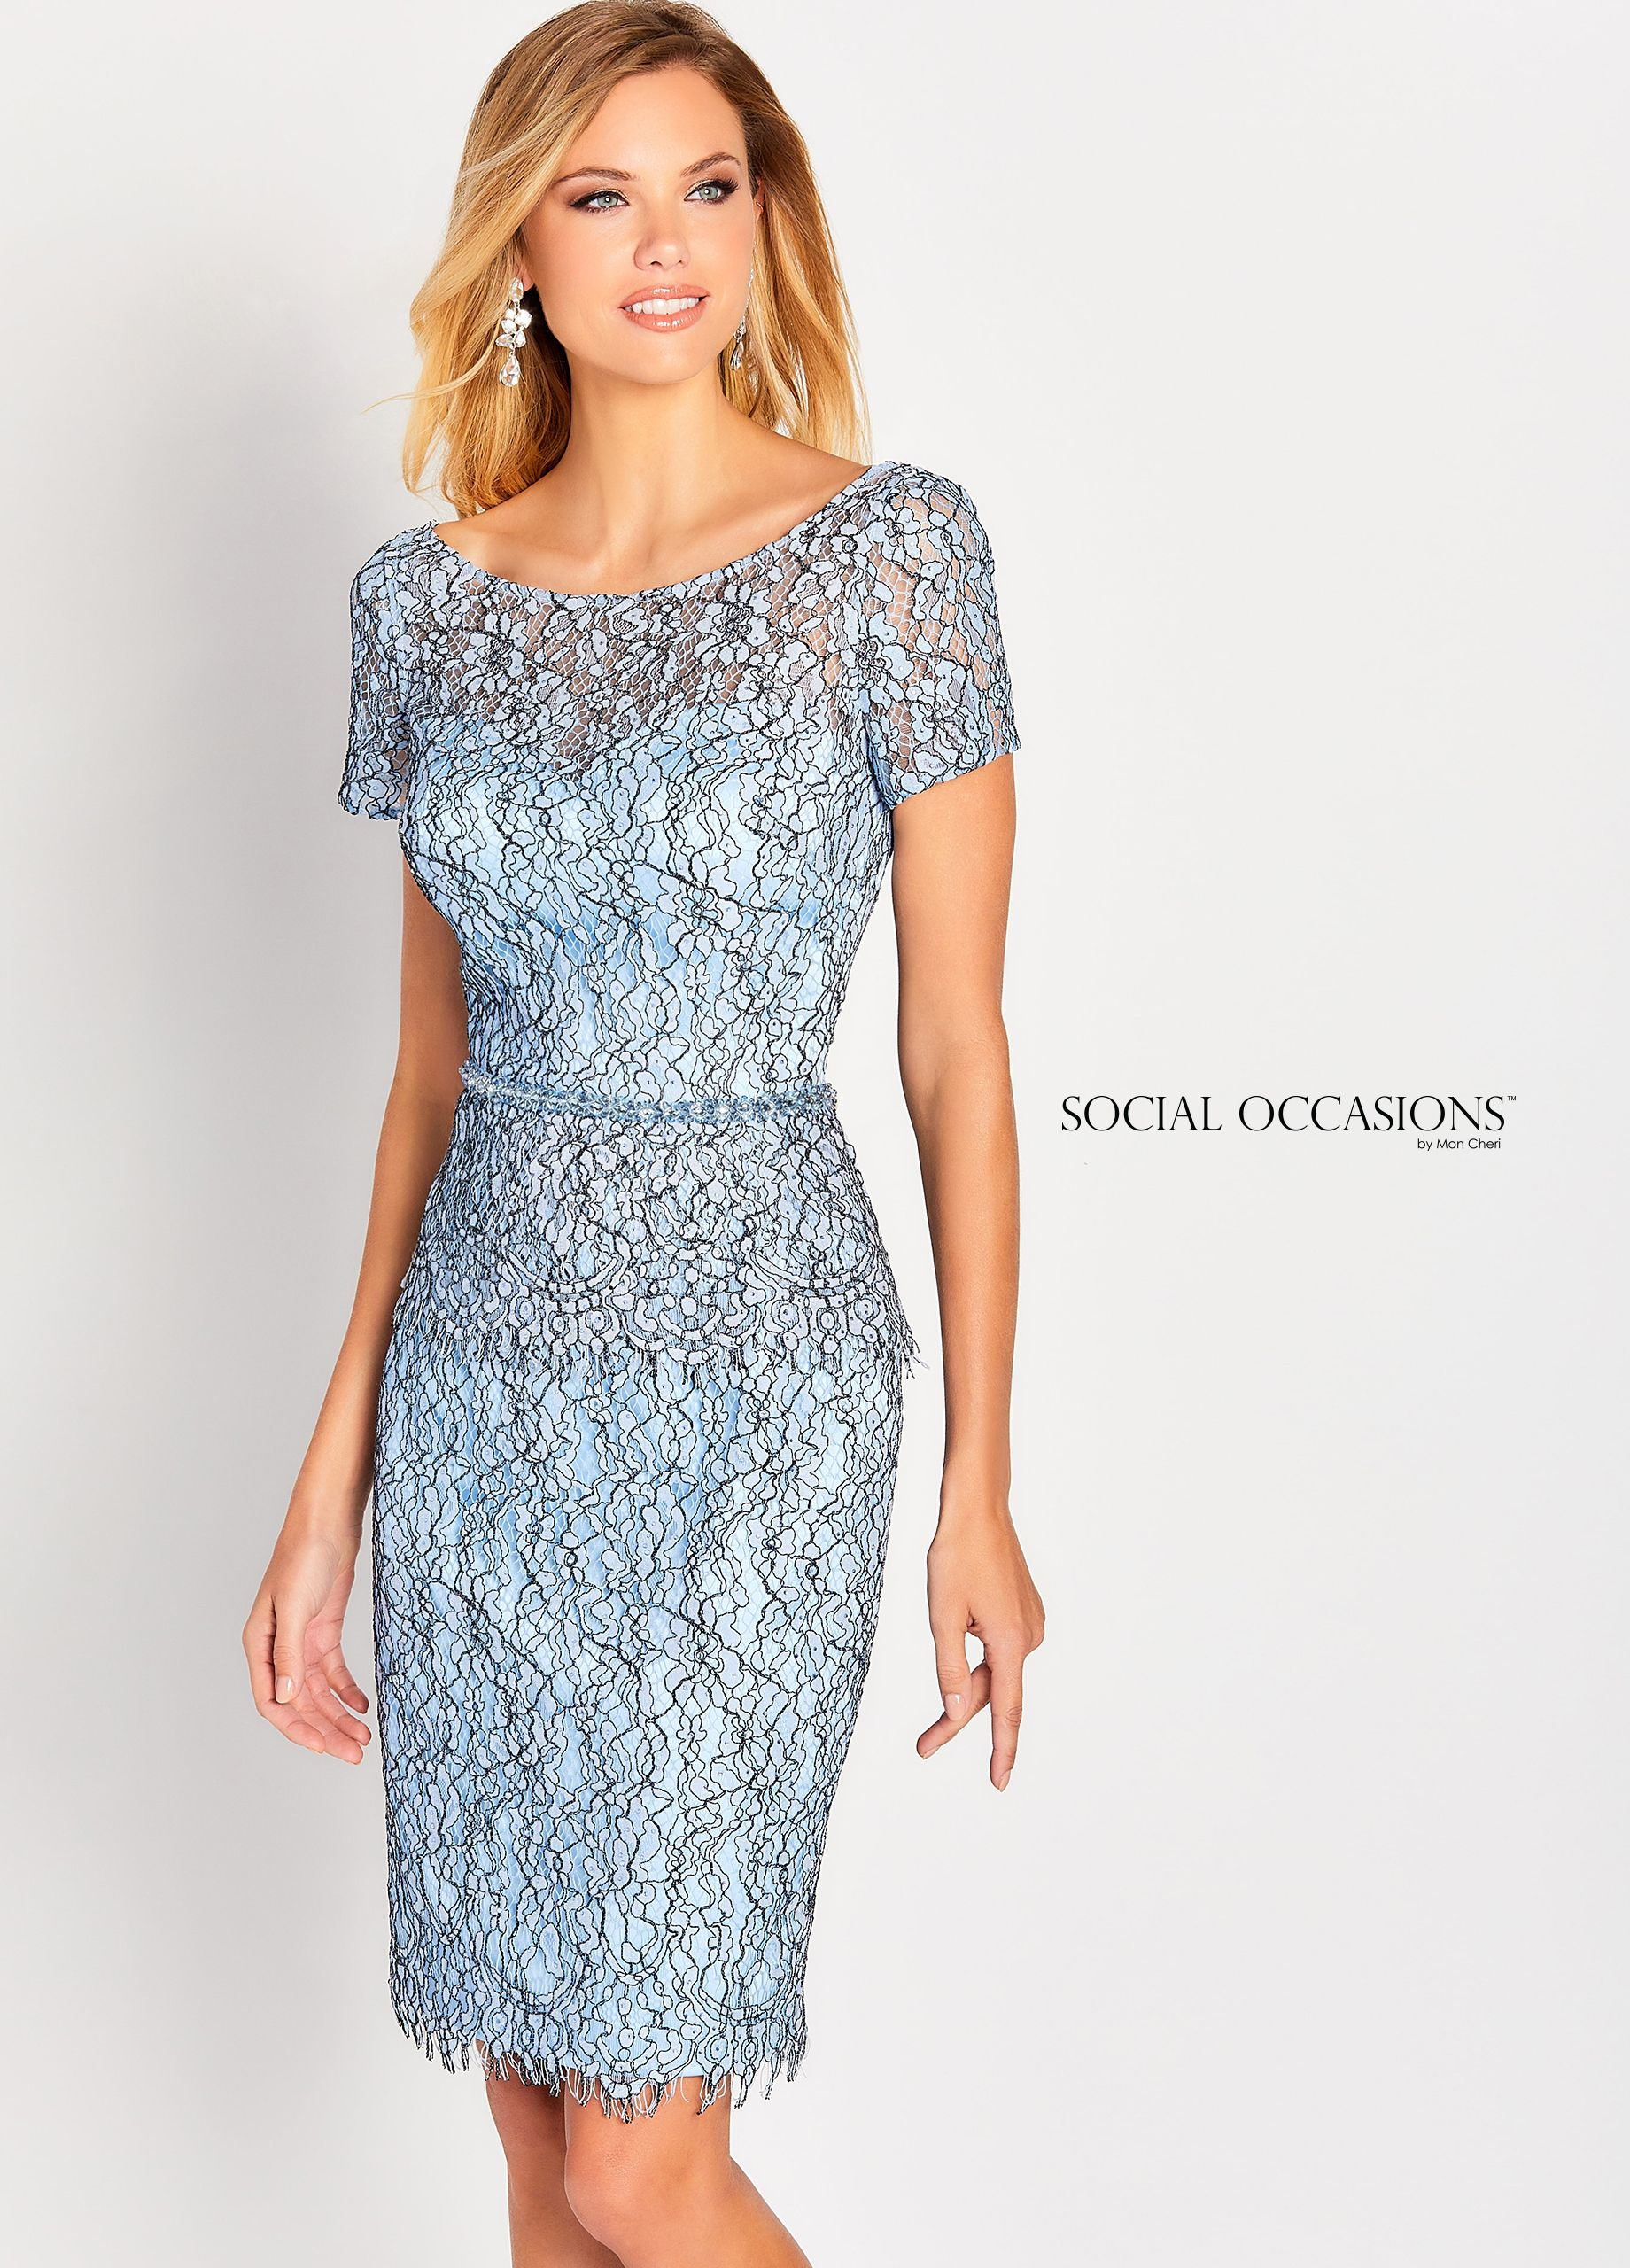 fad7649ab198 Social Occasions By Mon Cheri 119827 - Make an entrance in this sleeveless  allover lace knee